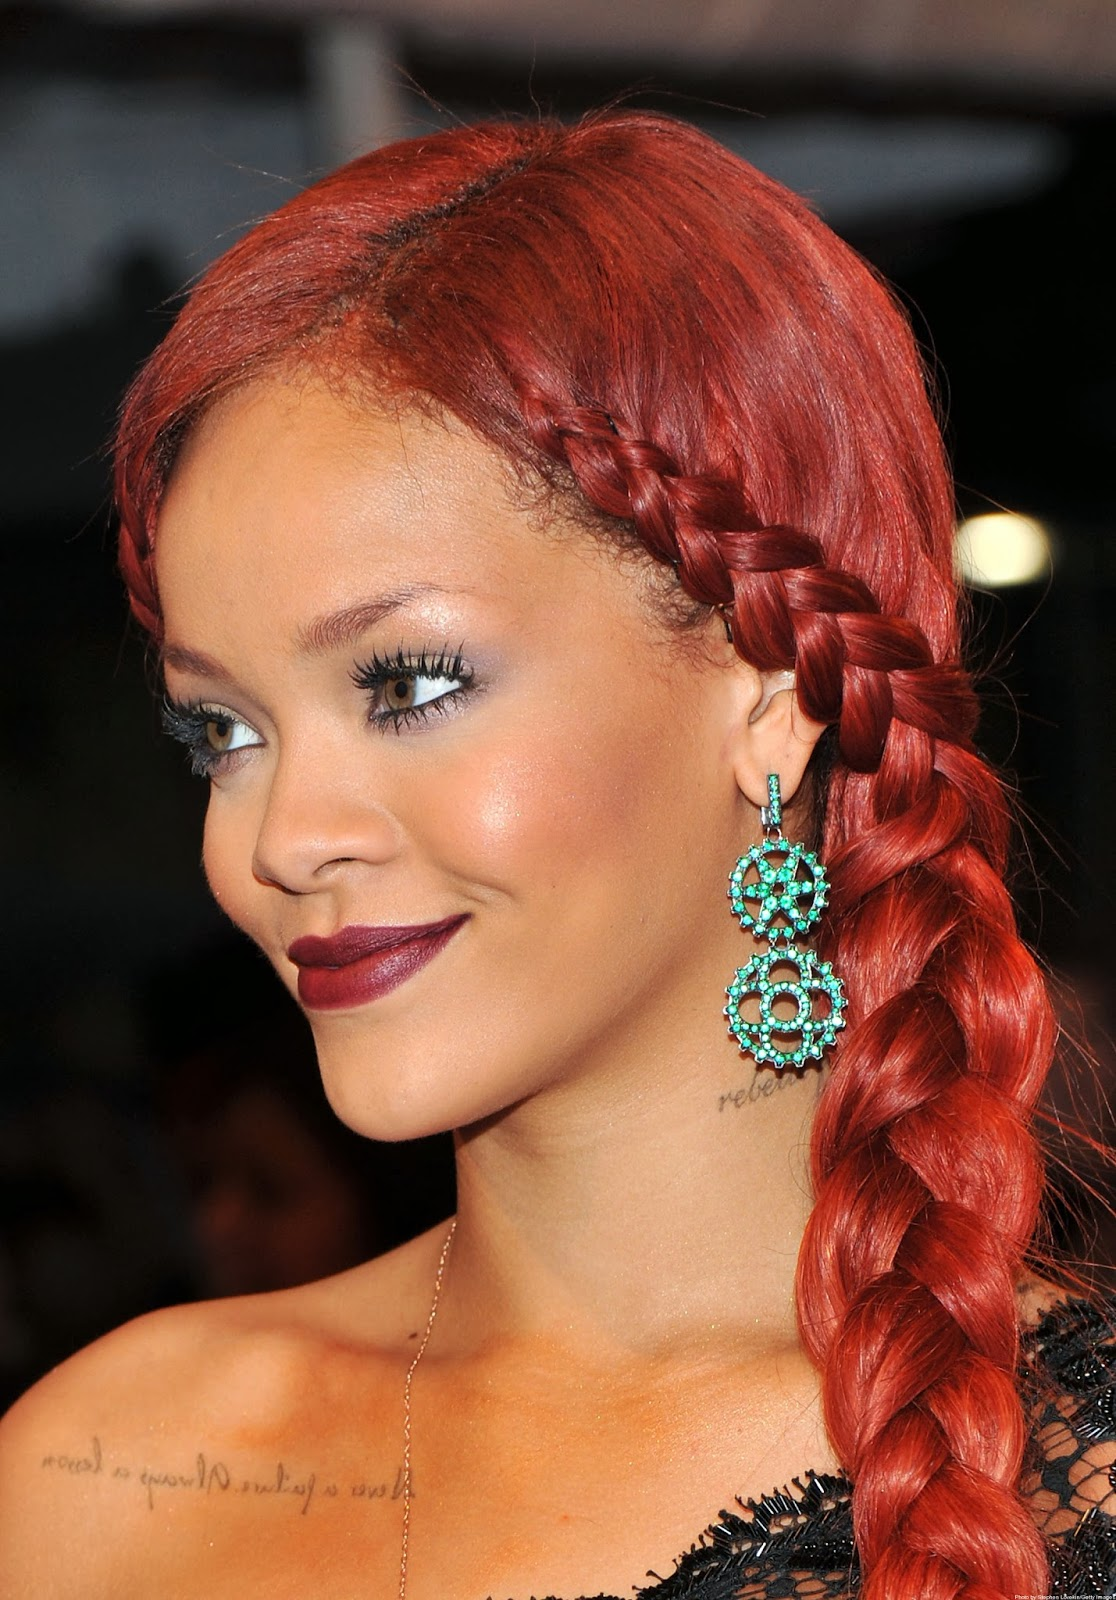 hairs style : Braided Hairstyles